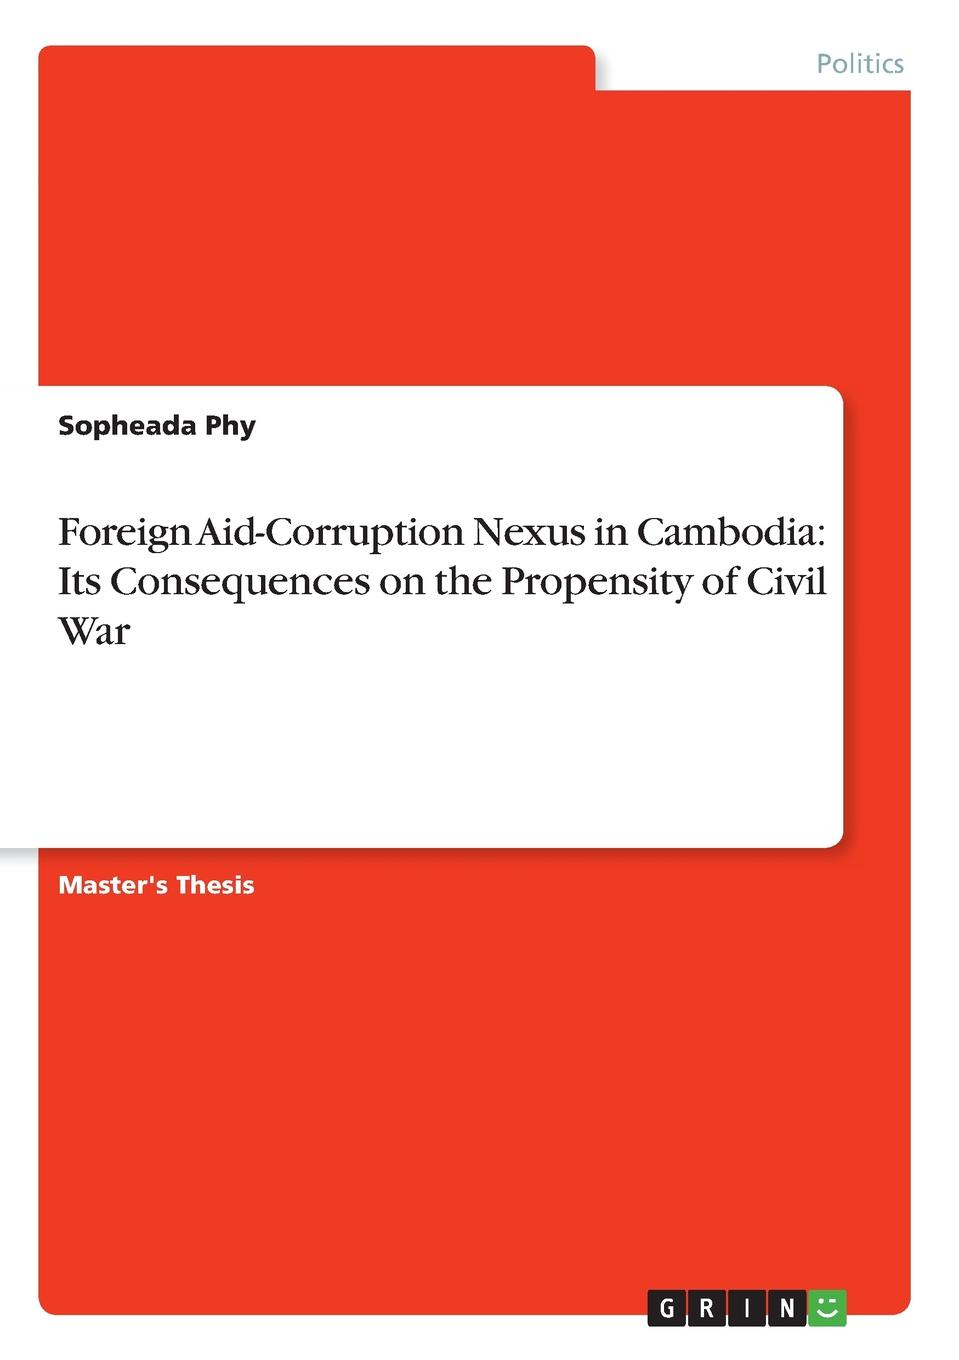 Sopheada Phy Foreign Aid-Corruption Nexus in Cambodia. Its Consequences on the Propensity of Civil War conway william martin the crowd in peace and war